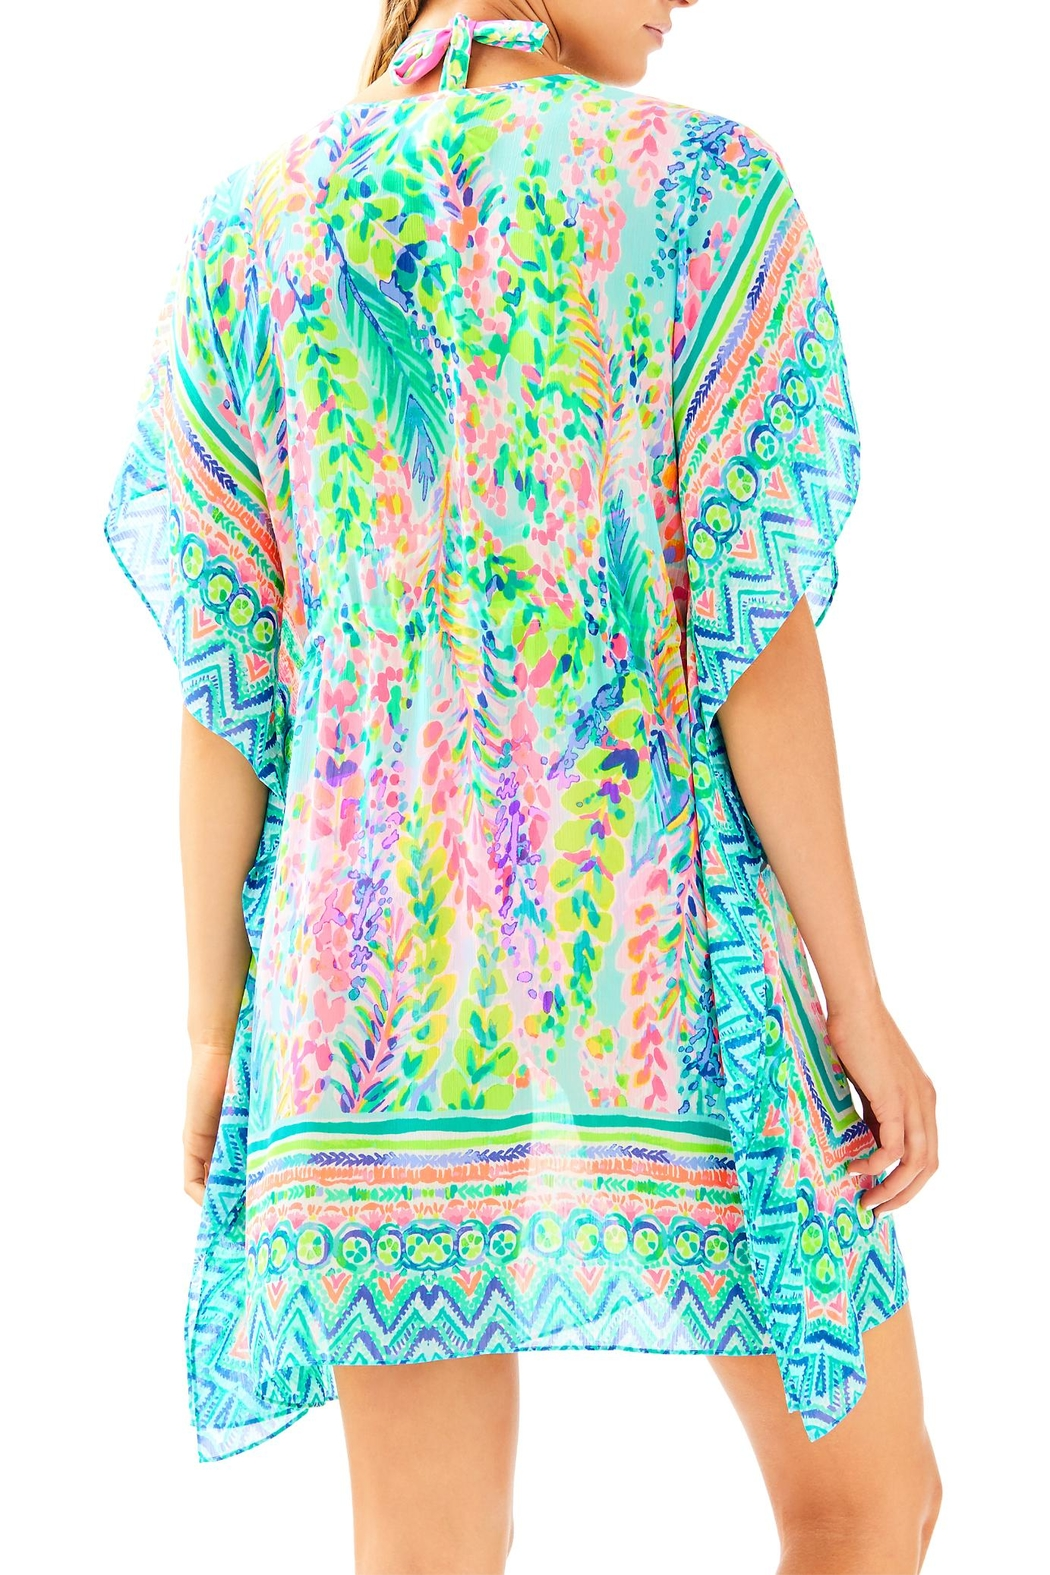 41a12c8f7d Lilly Pulitzer Gardenia Coverup from Sandestin Golf and Beach Resort ...